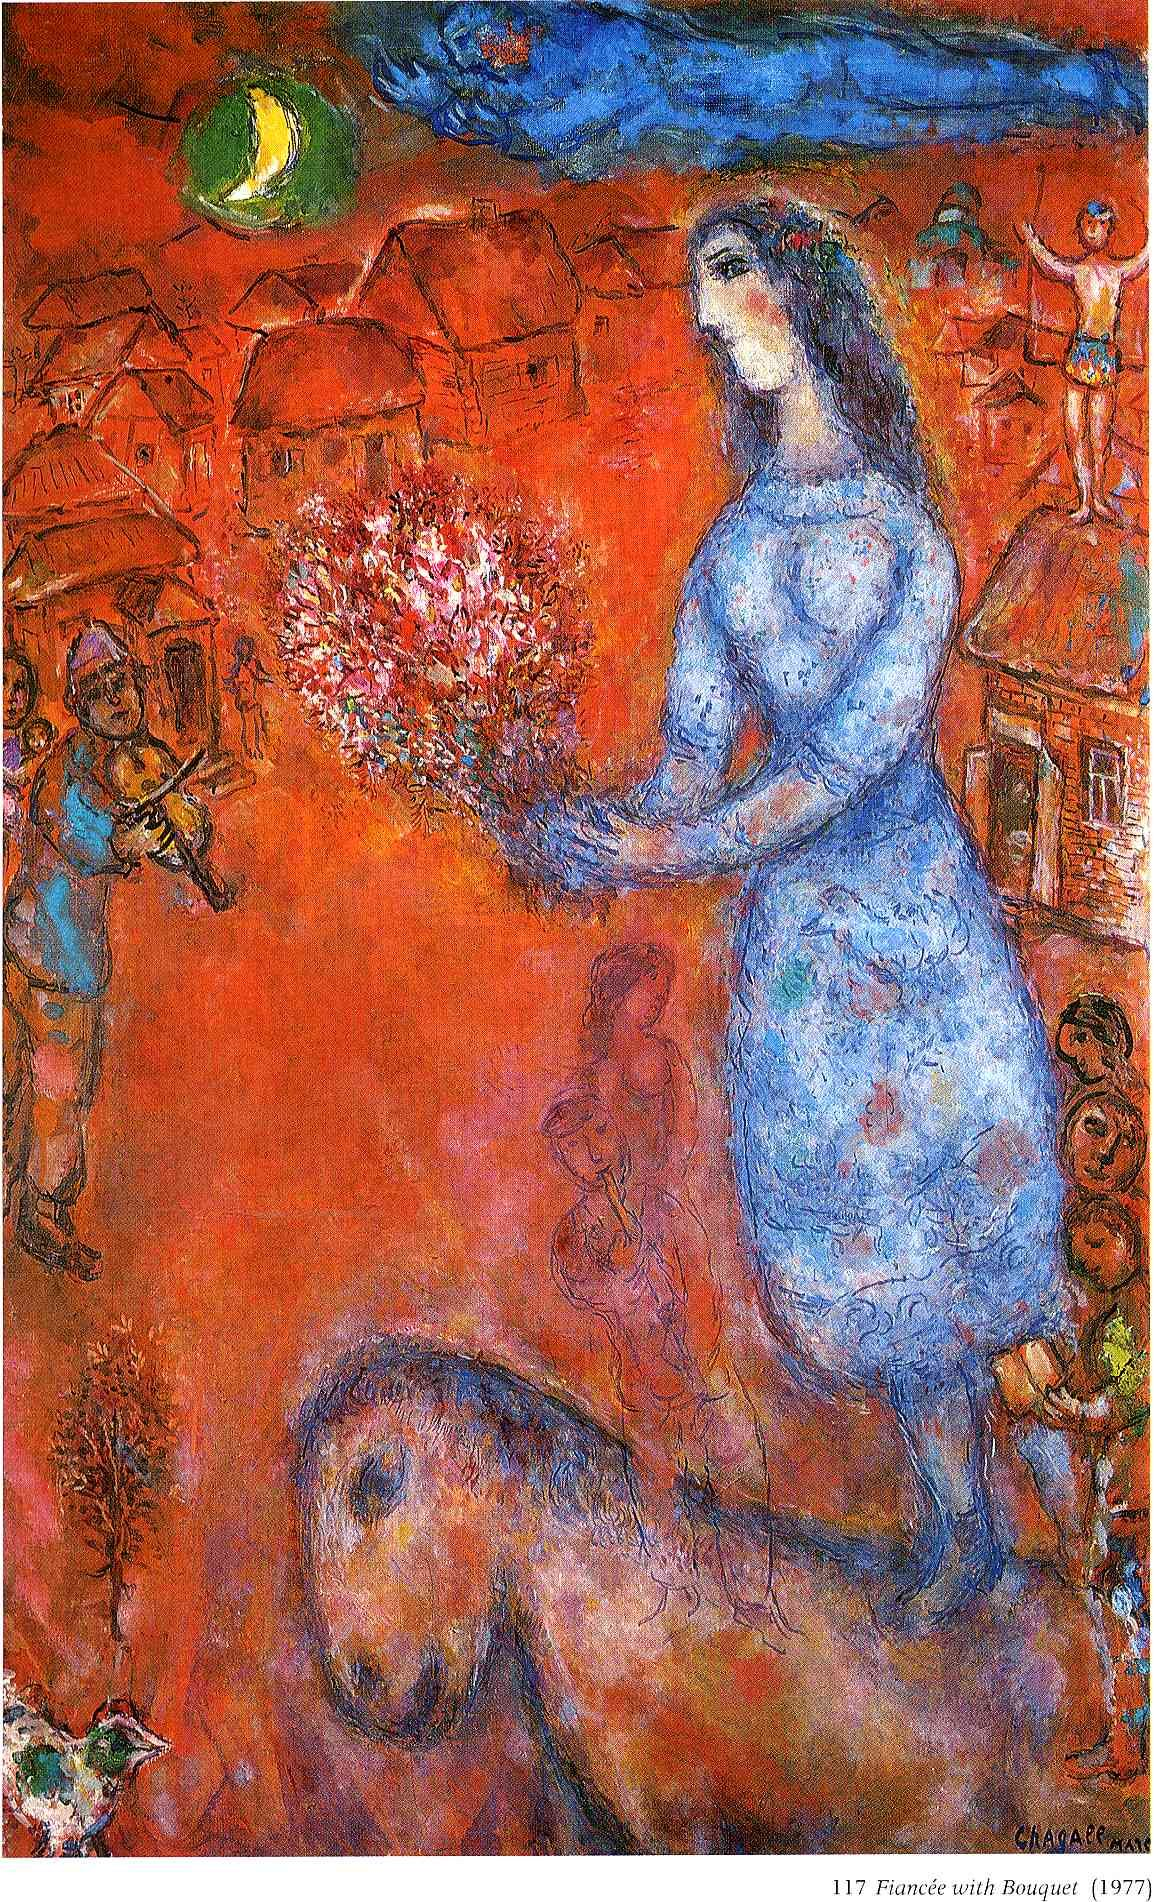 Fiancee with bouquet - Marc Chagall. #art #artists #chagall